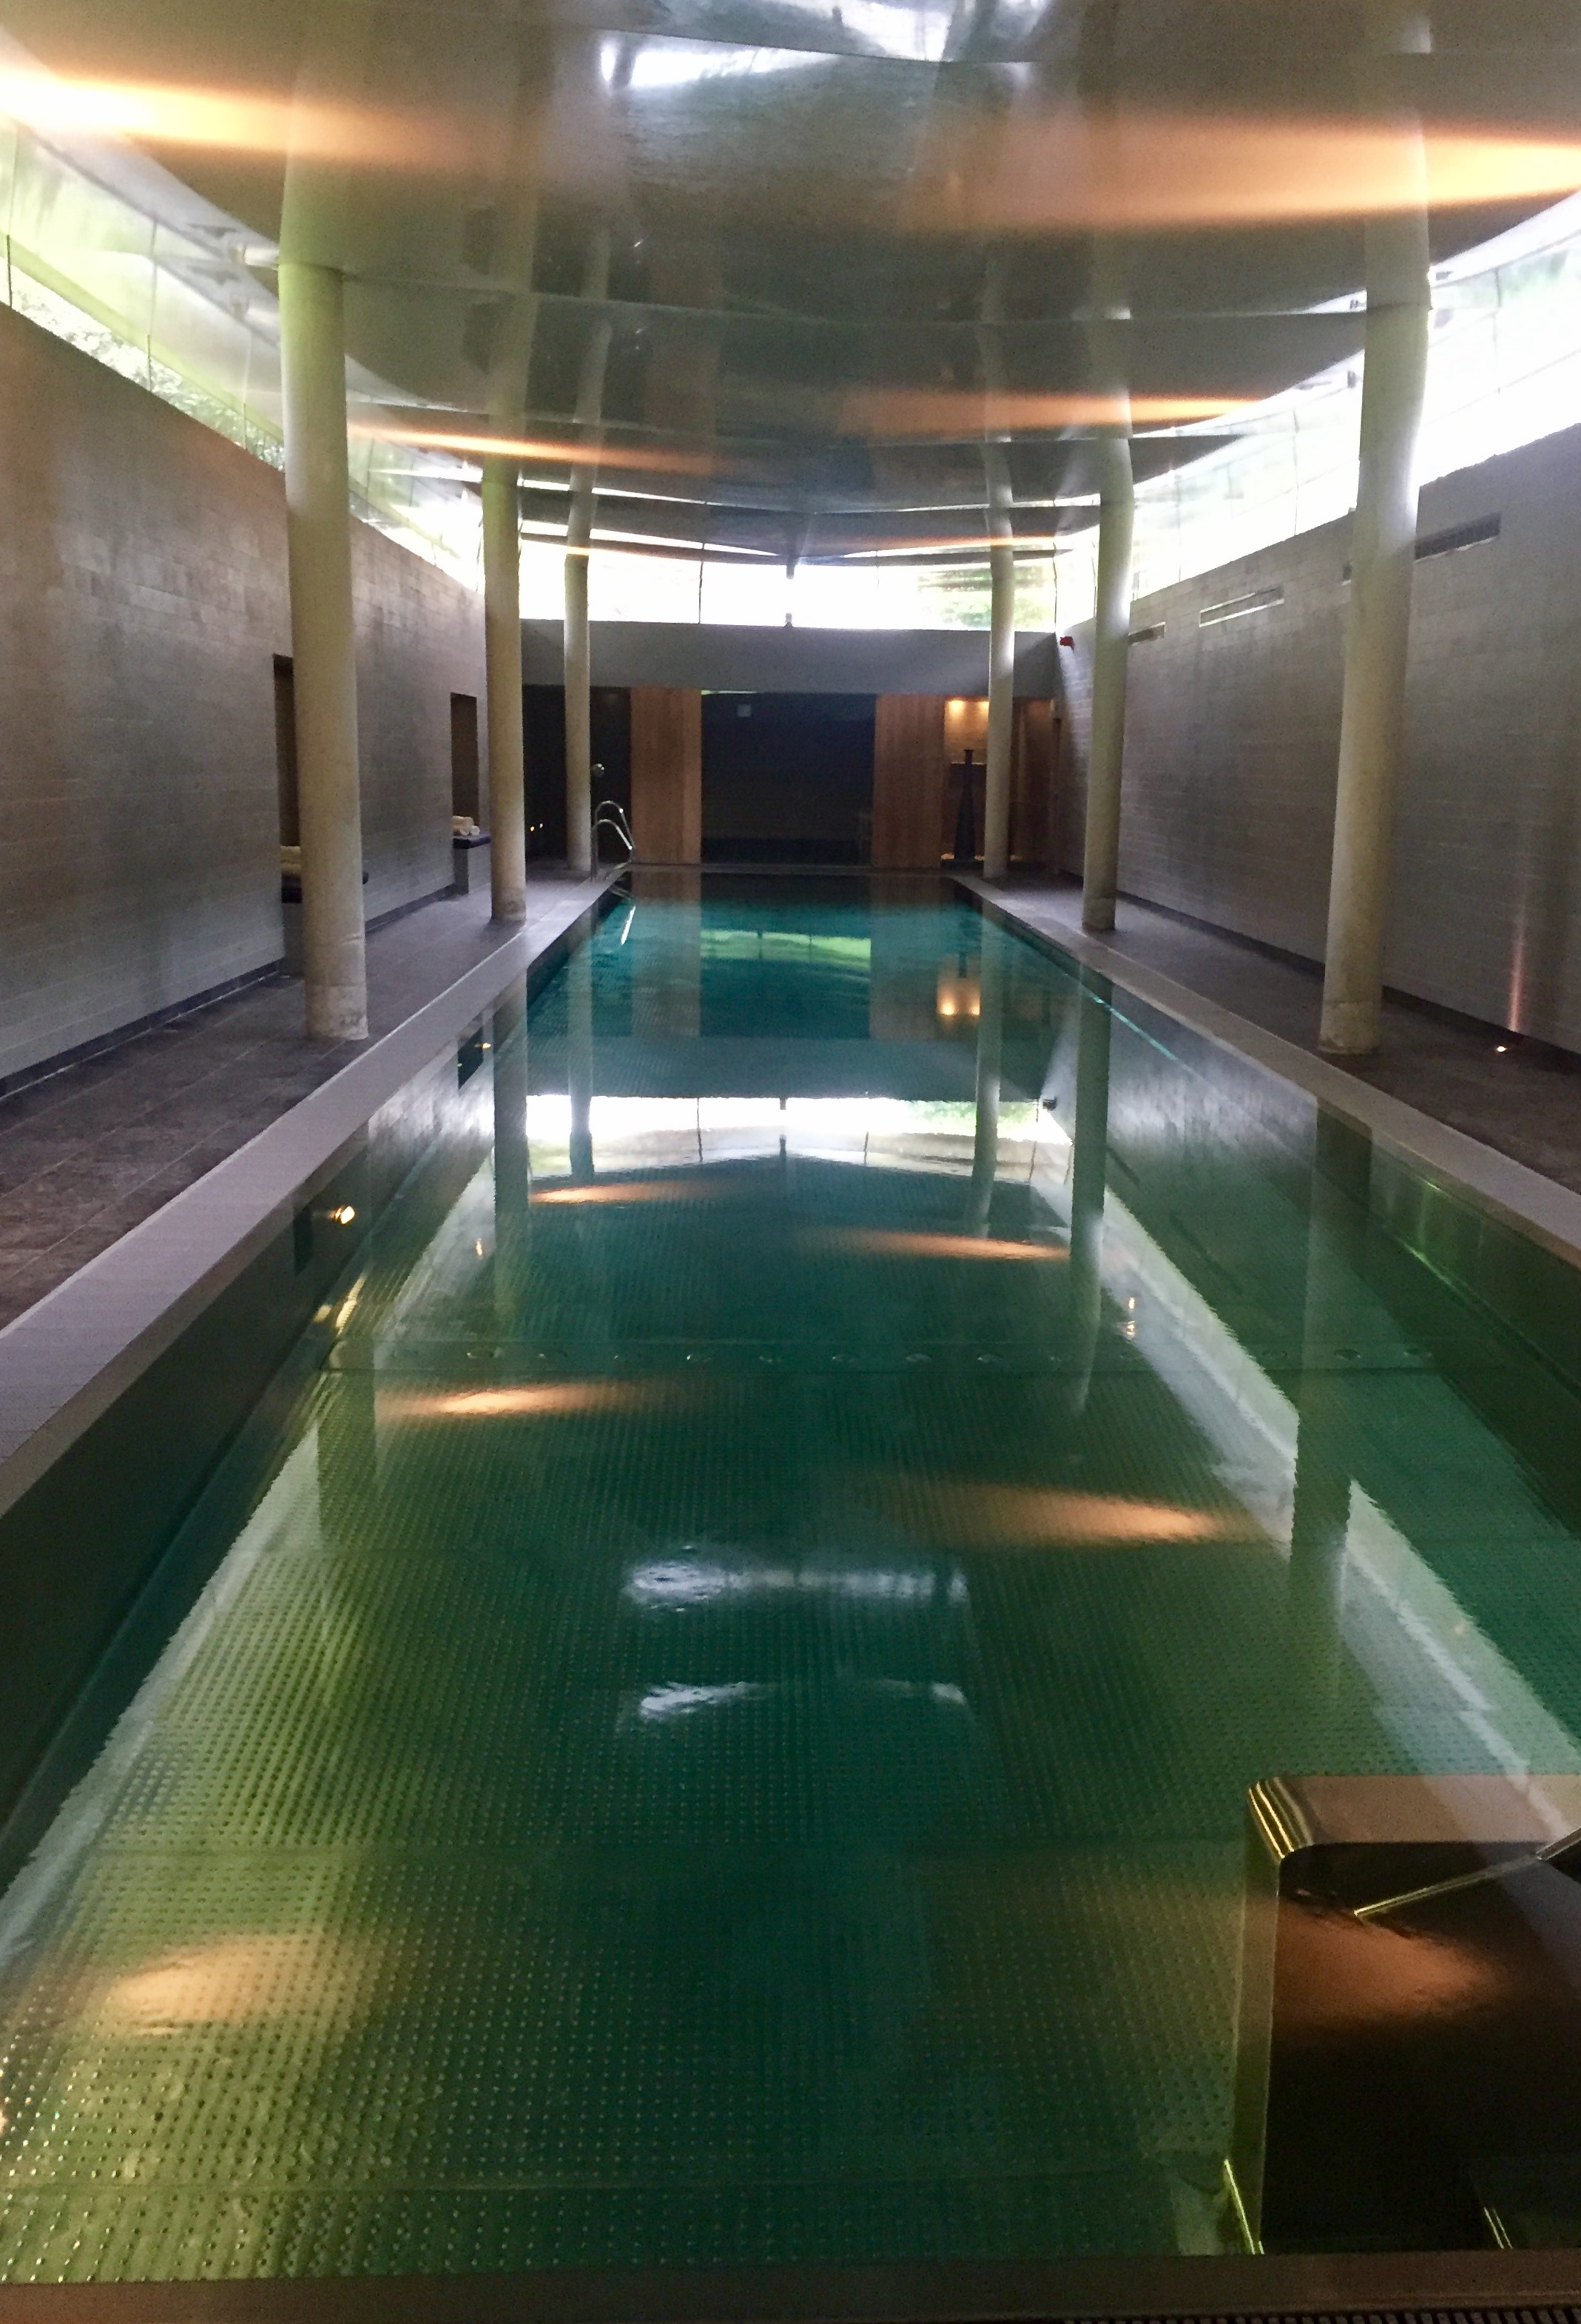 The pool at the spa